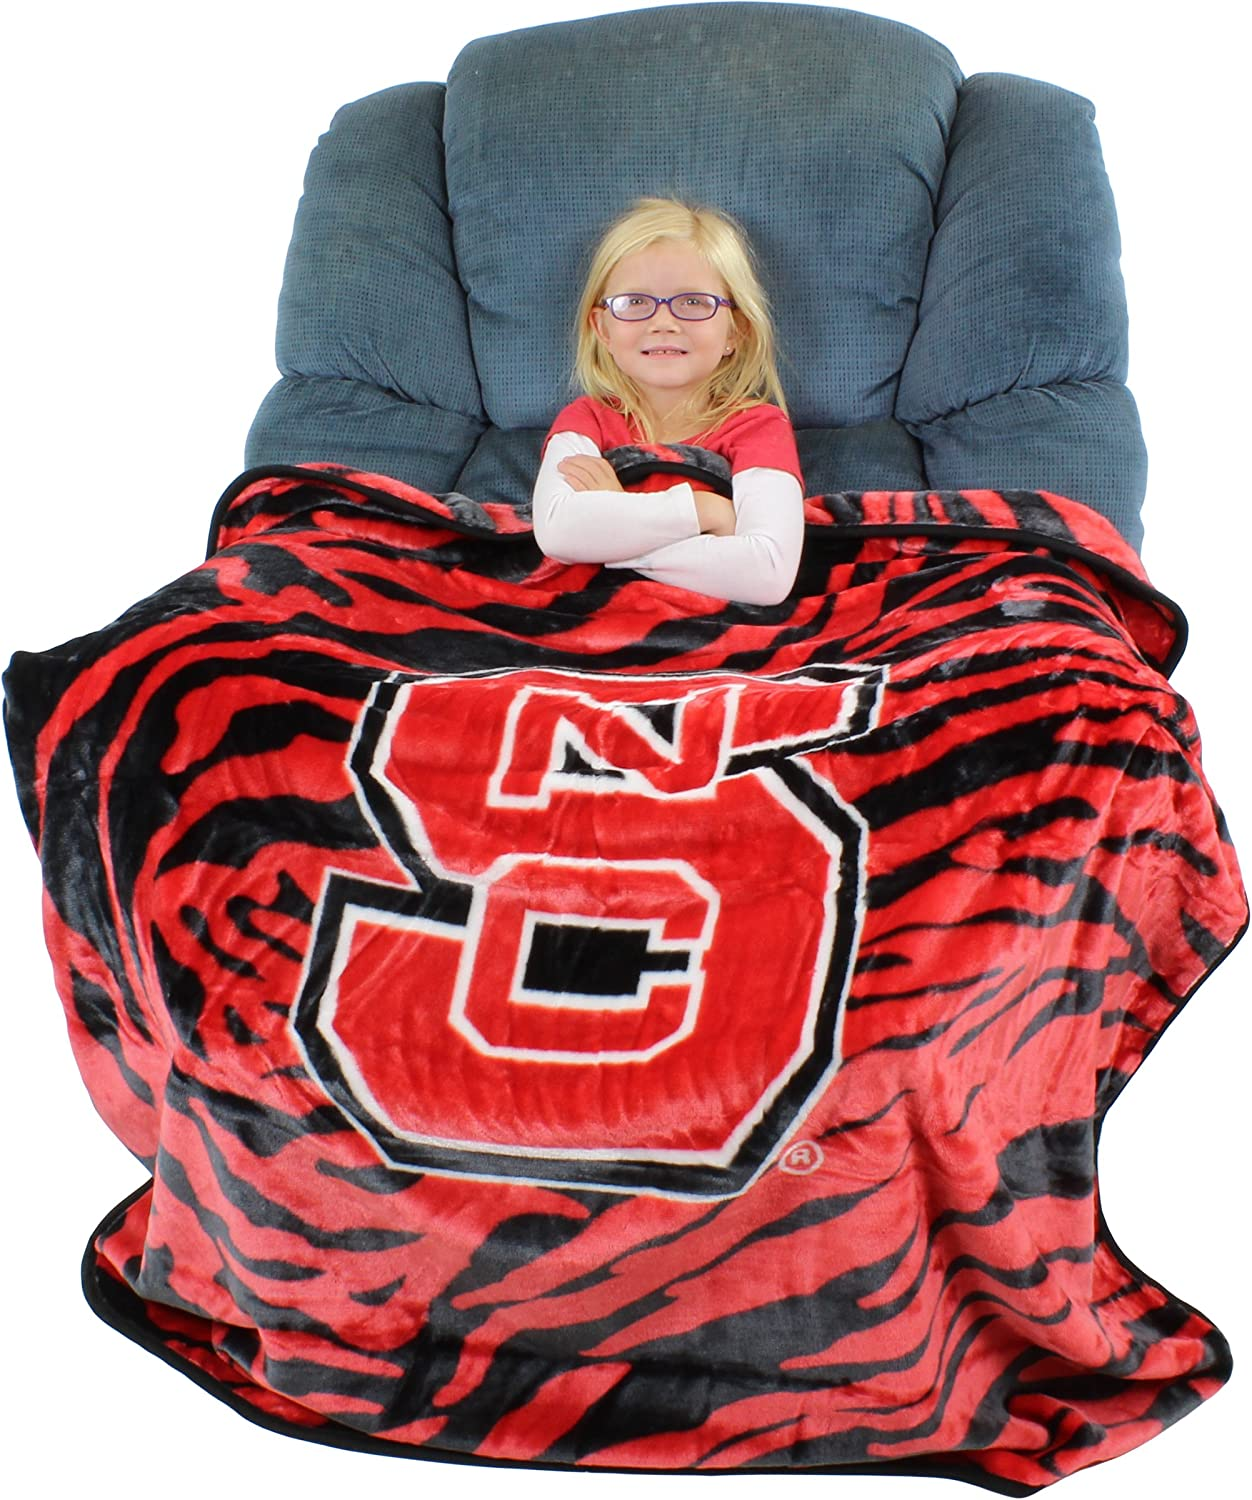 """College Covers Nc State Wolfpack Raschel Throw Blanket, 50"""" x 60"""""""